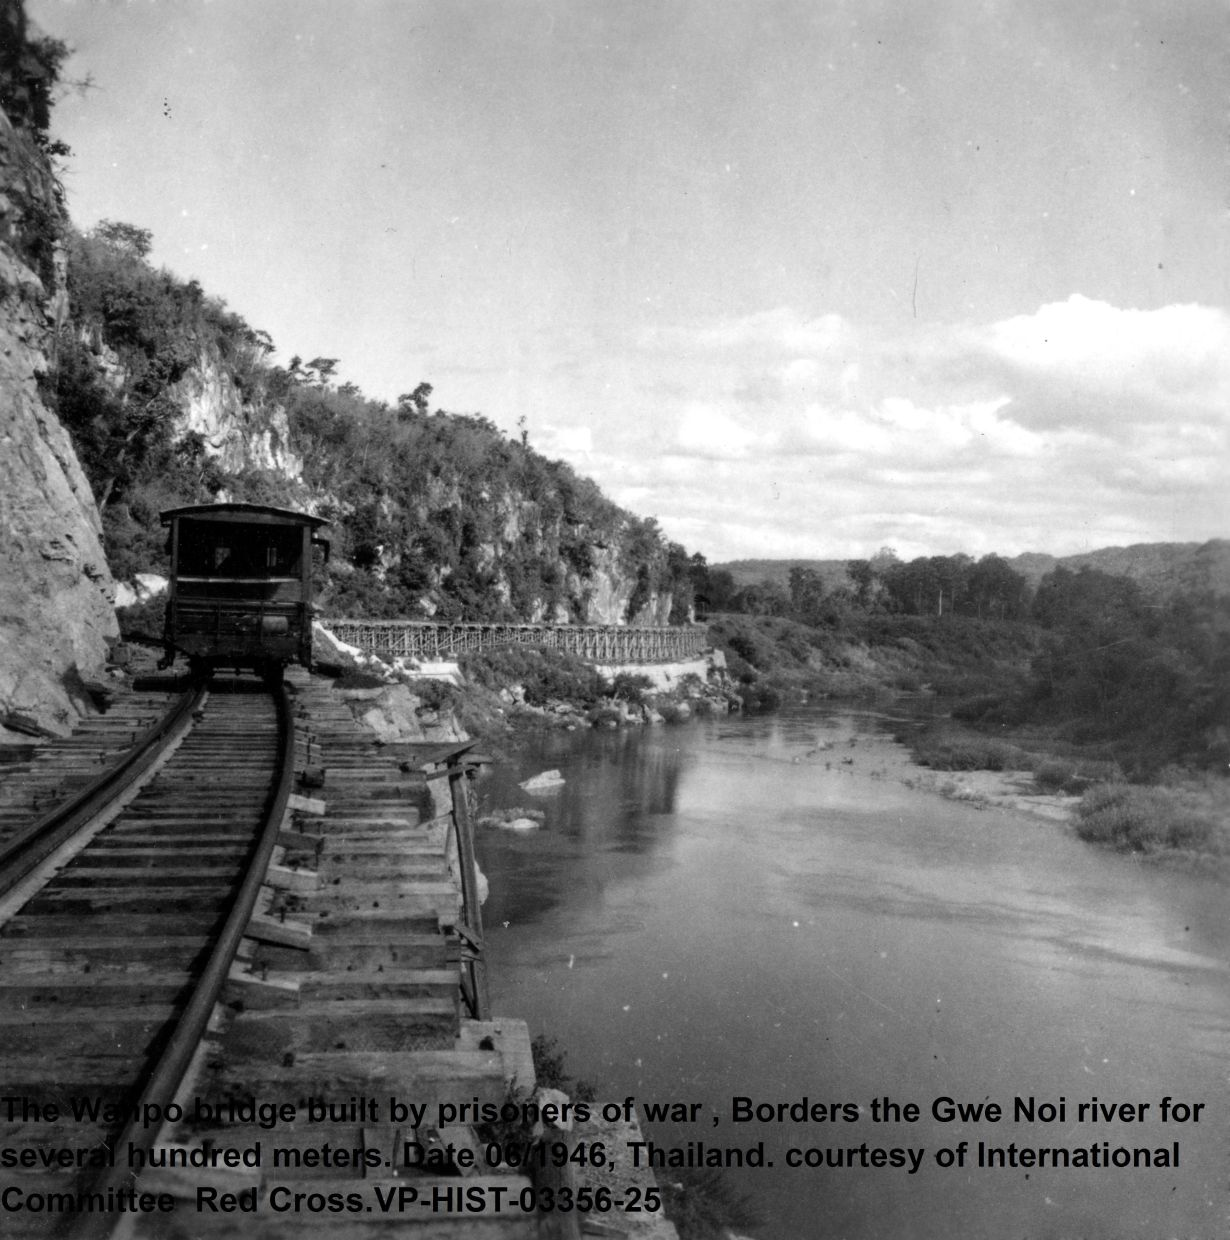 The Wanpo bridge, built by prisoners of war, borders Gwe Noi (Kwai Noi) river for several hundred metres. Picture taken in June 1946, Thailand. Photo: International Red Cross